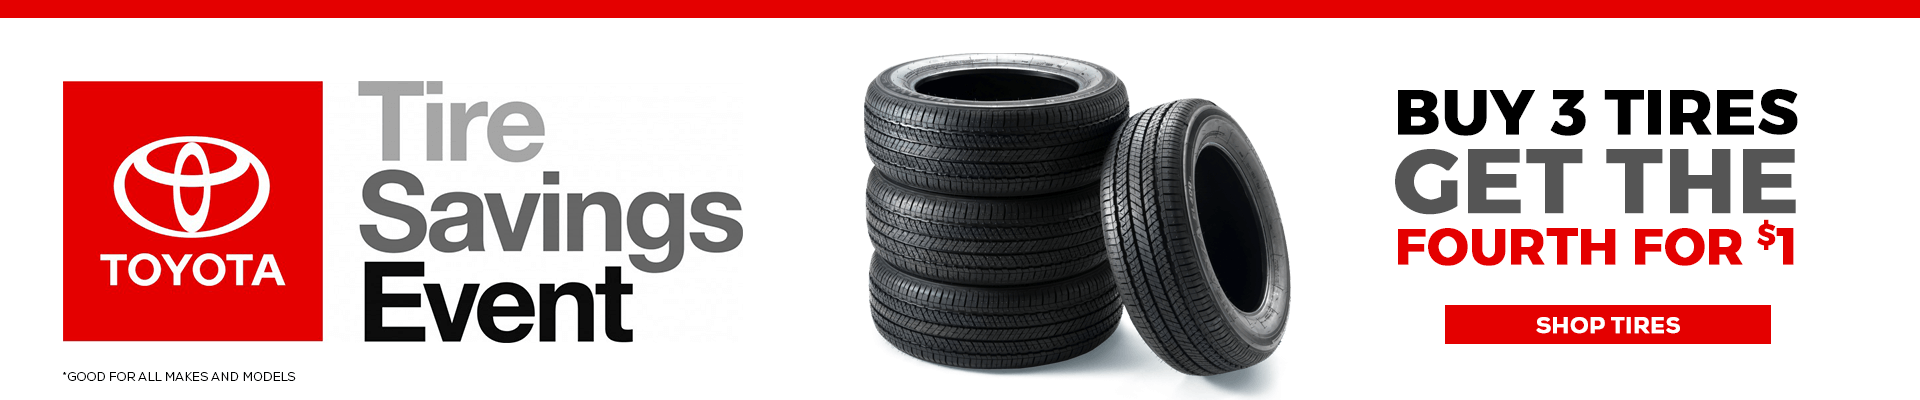 Check out our tire specials